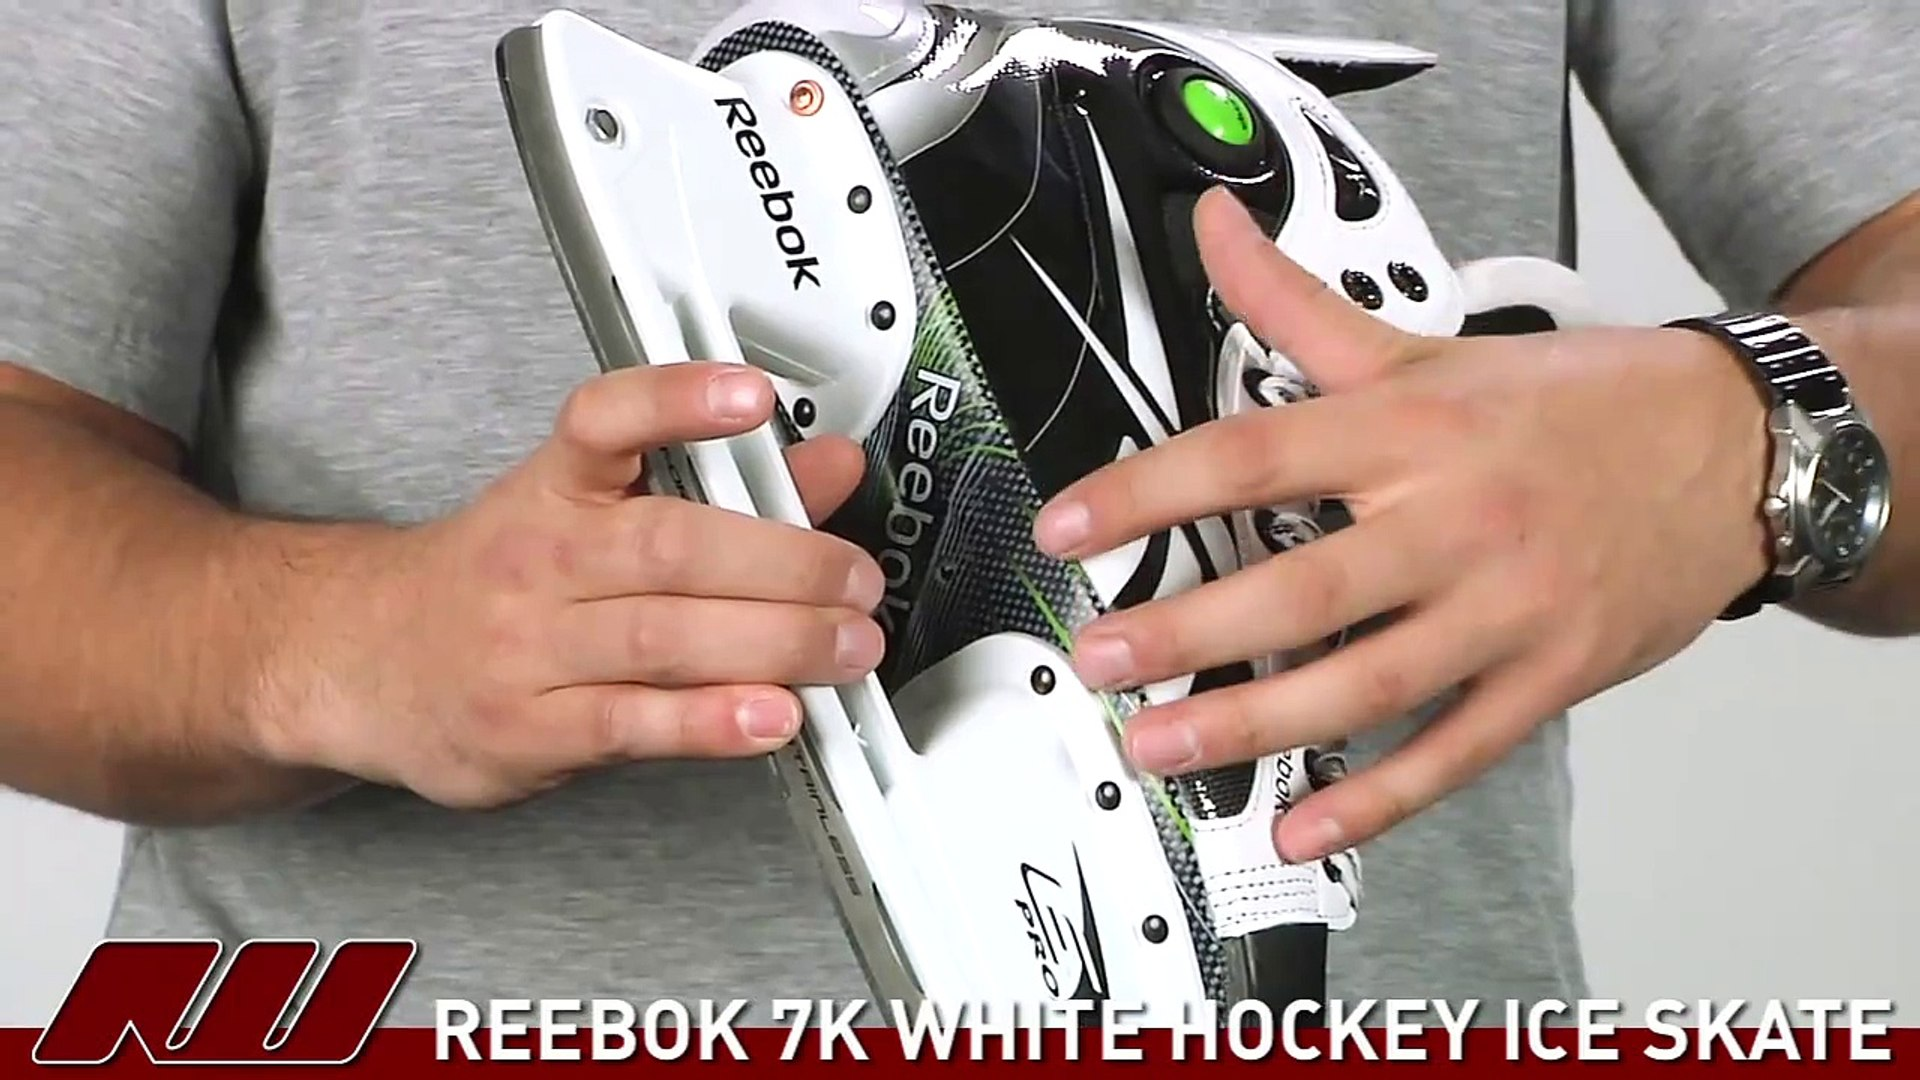 Reebok 7K Goalie Mask Senior